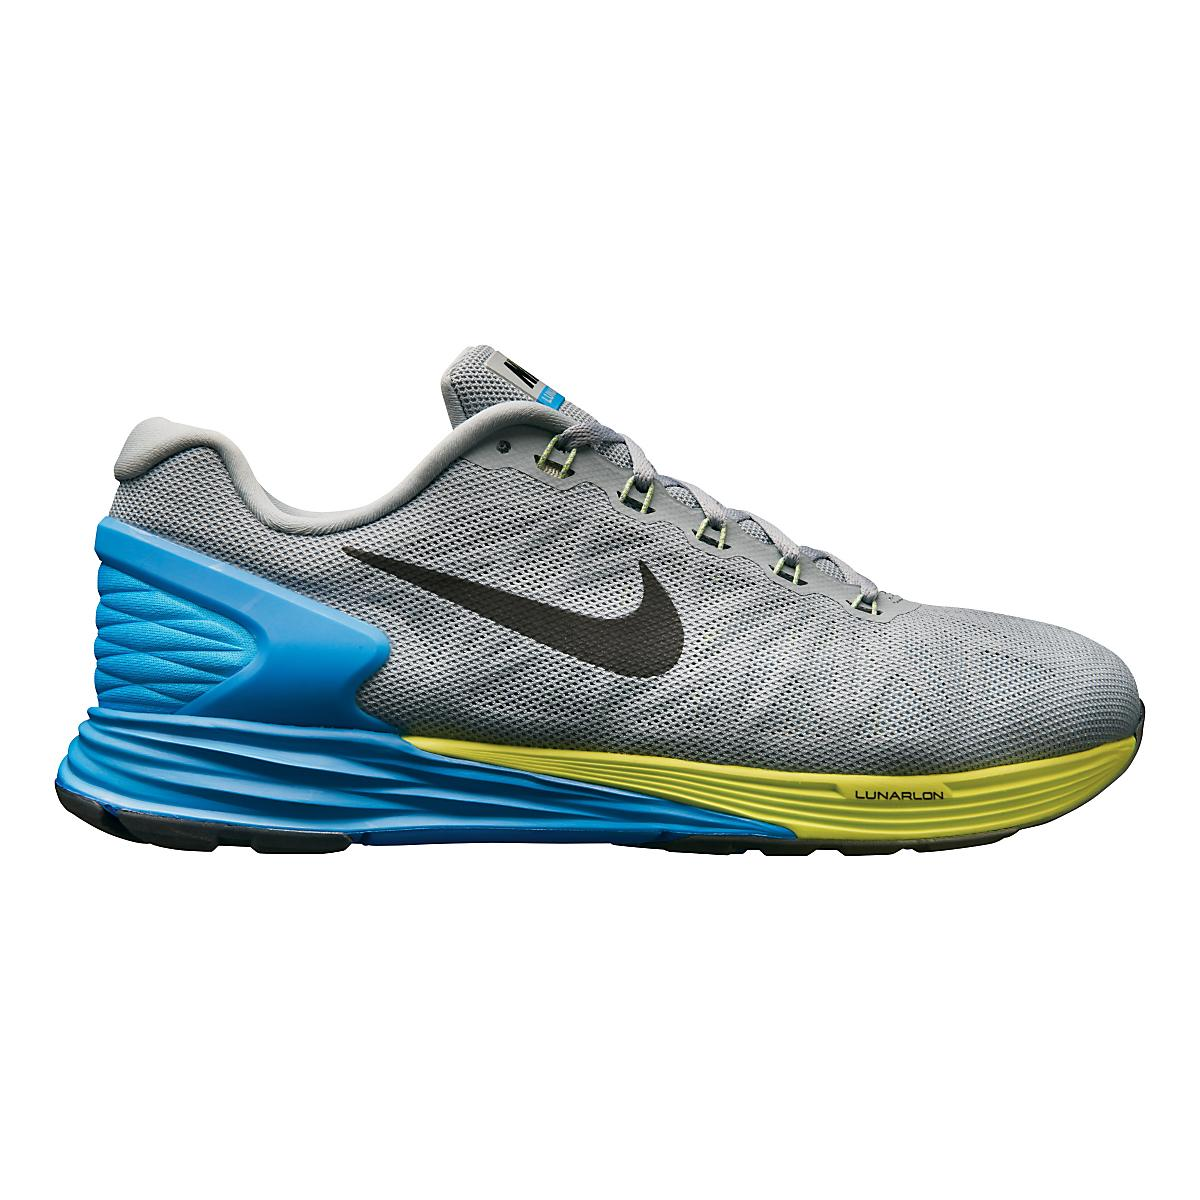 newest 53665 ee667 Mens Nike LunarGlide 6 Running Shoe at Road Runner Sports